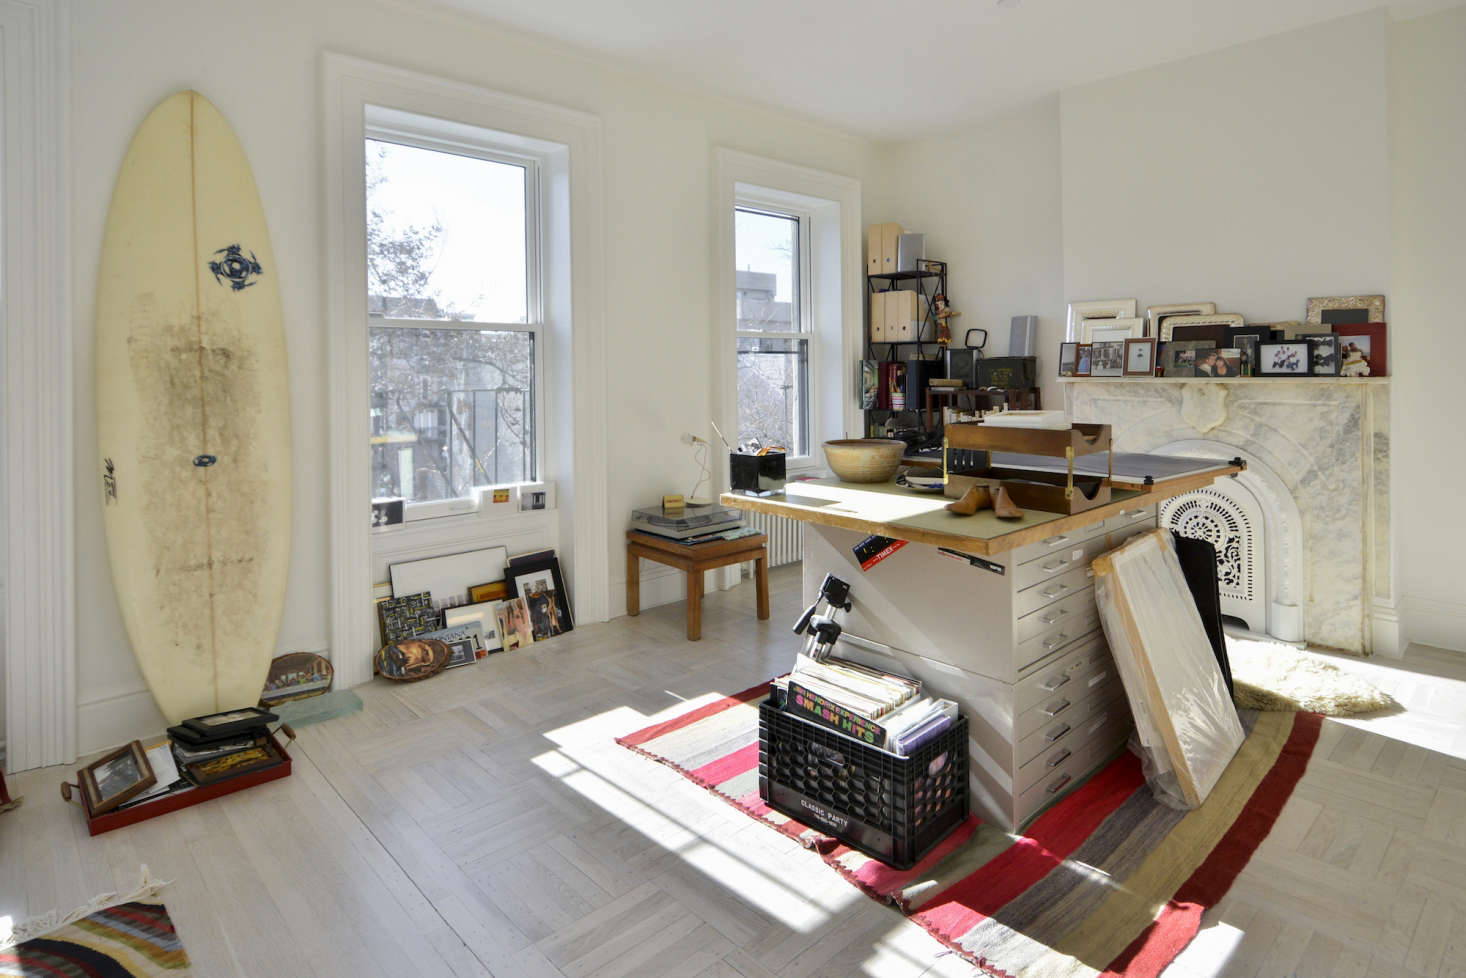 Architects Gregory Merkel and Catalina Rojas's top floor workroom in their remodeled Brooklyn townhouse | Remodelista